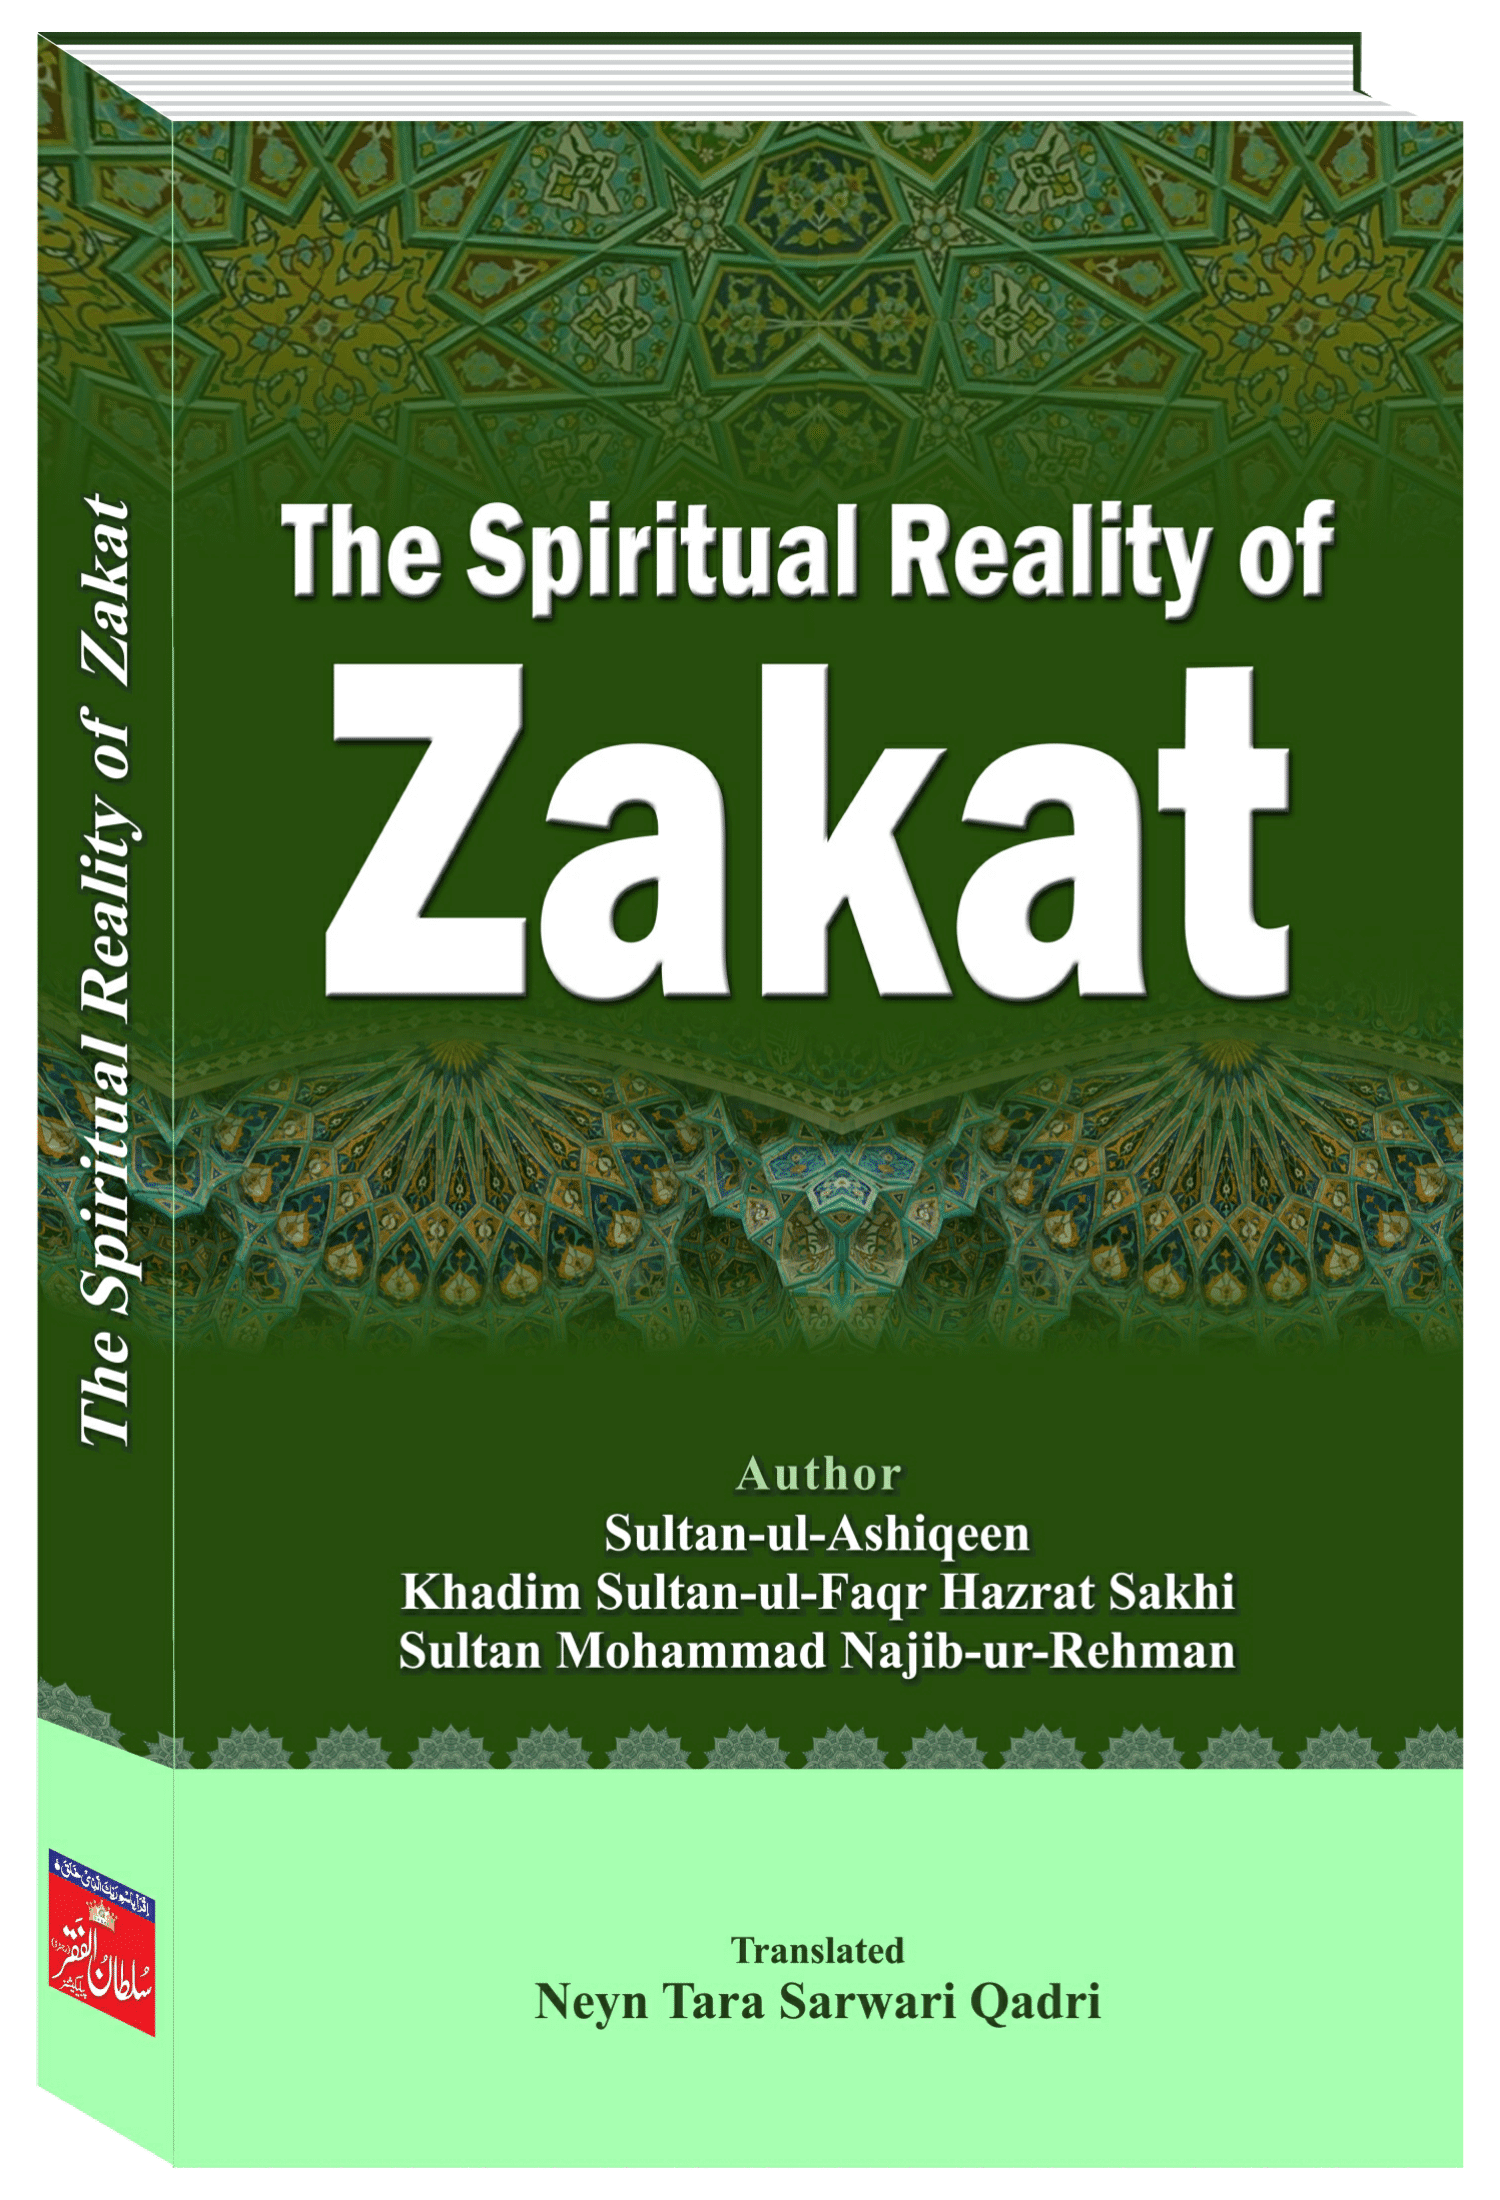 The Spiritual Reality of Zakat